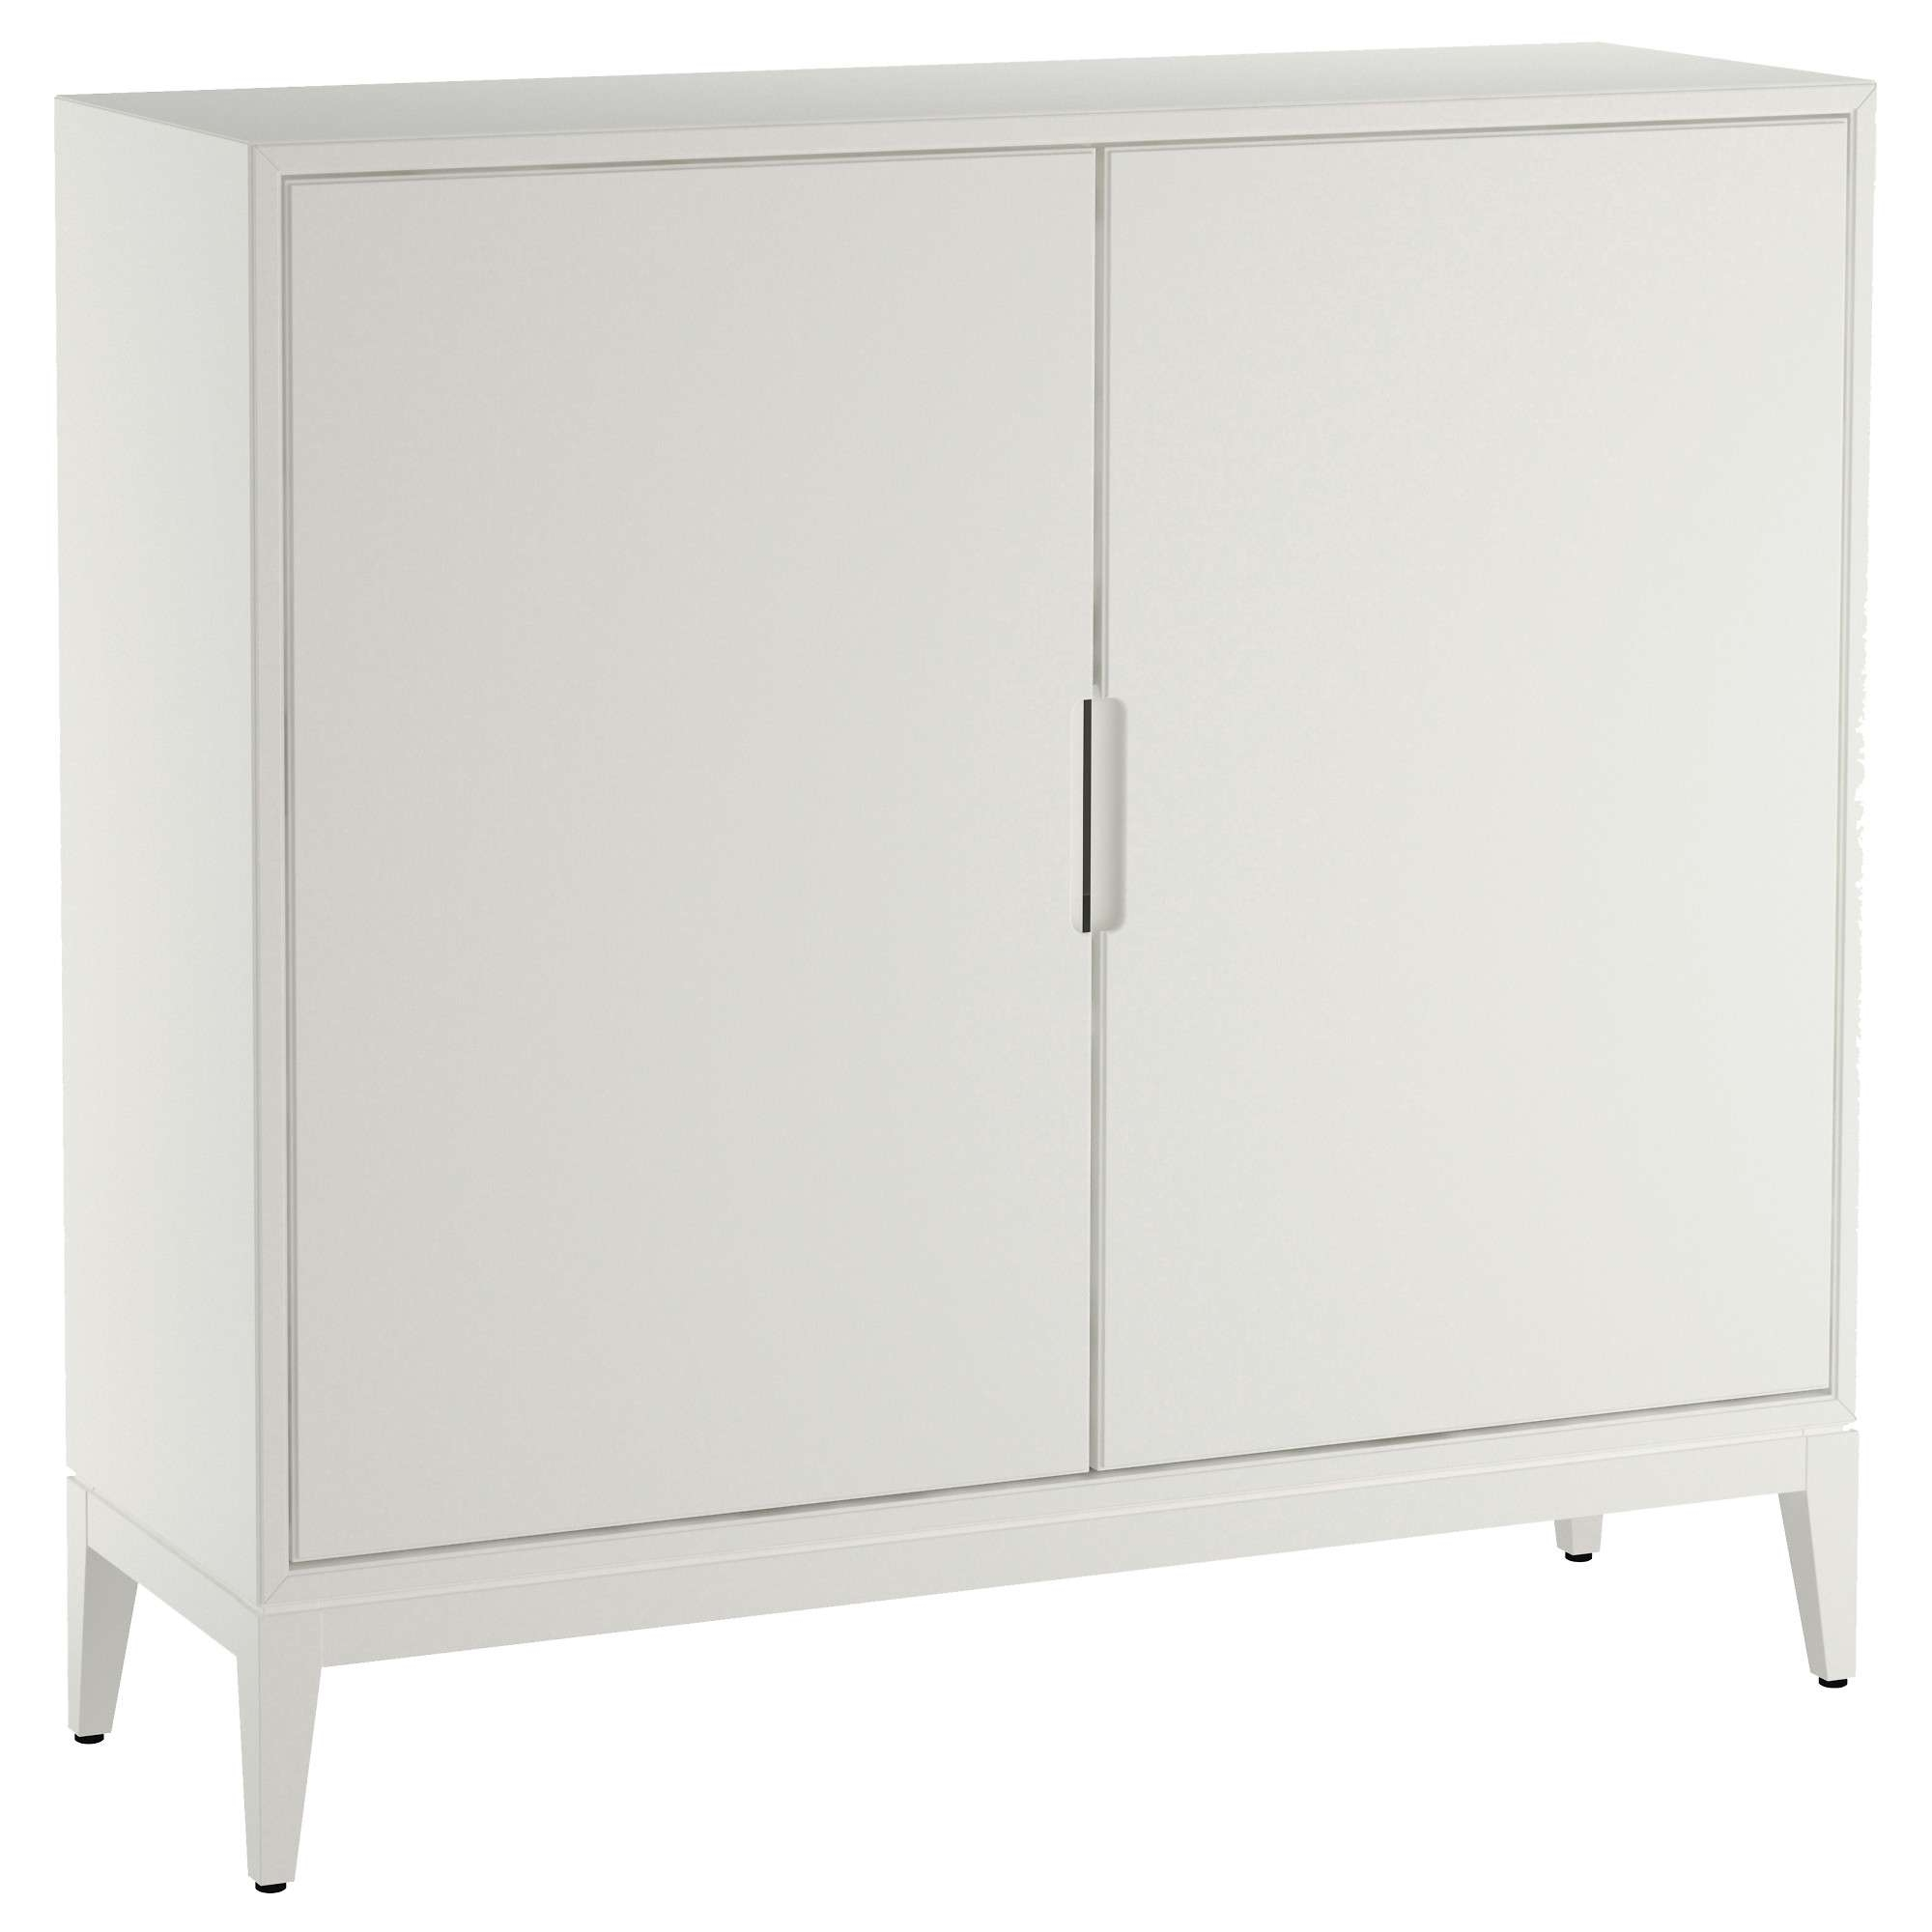 Storage Cabinets & Storage Cupboards | Ikea Regarding White Gloss Ikea Sideboards (View 8 of 20)